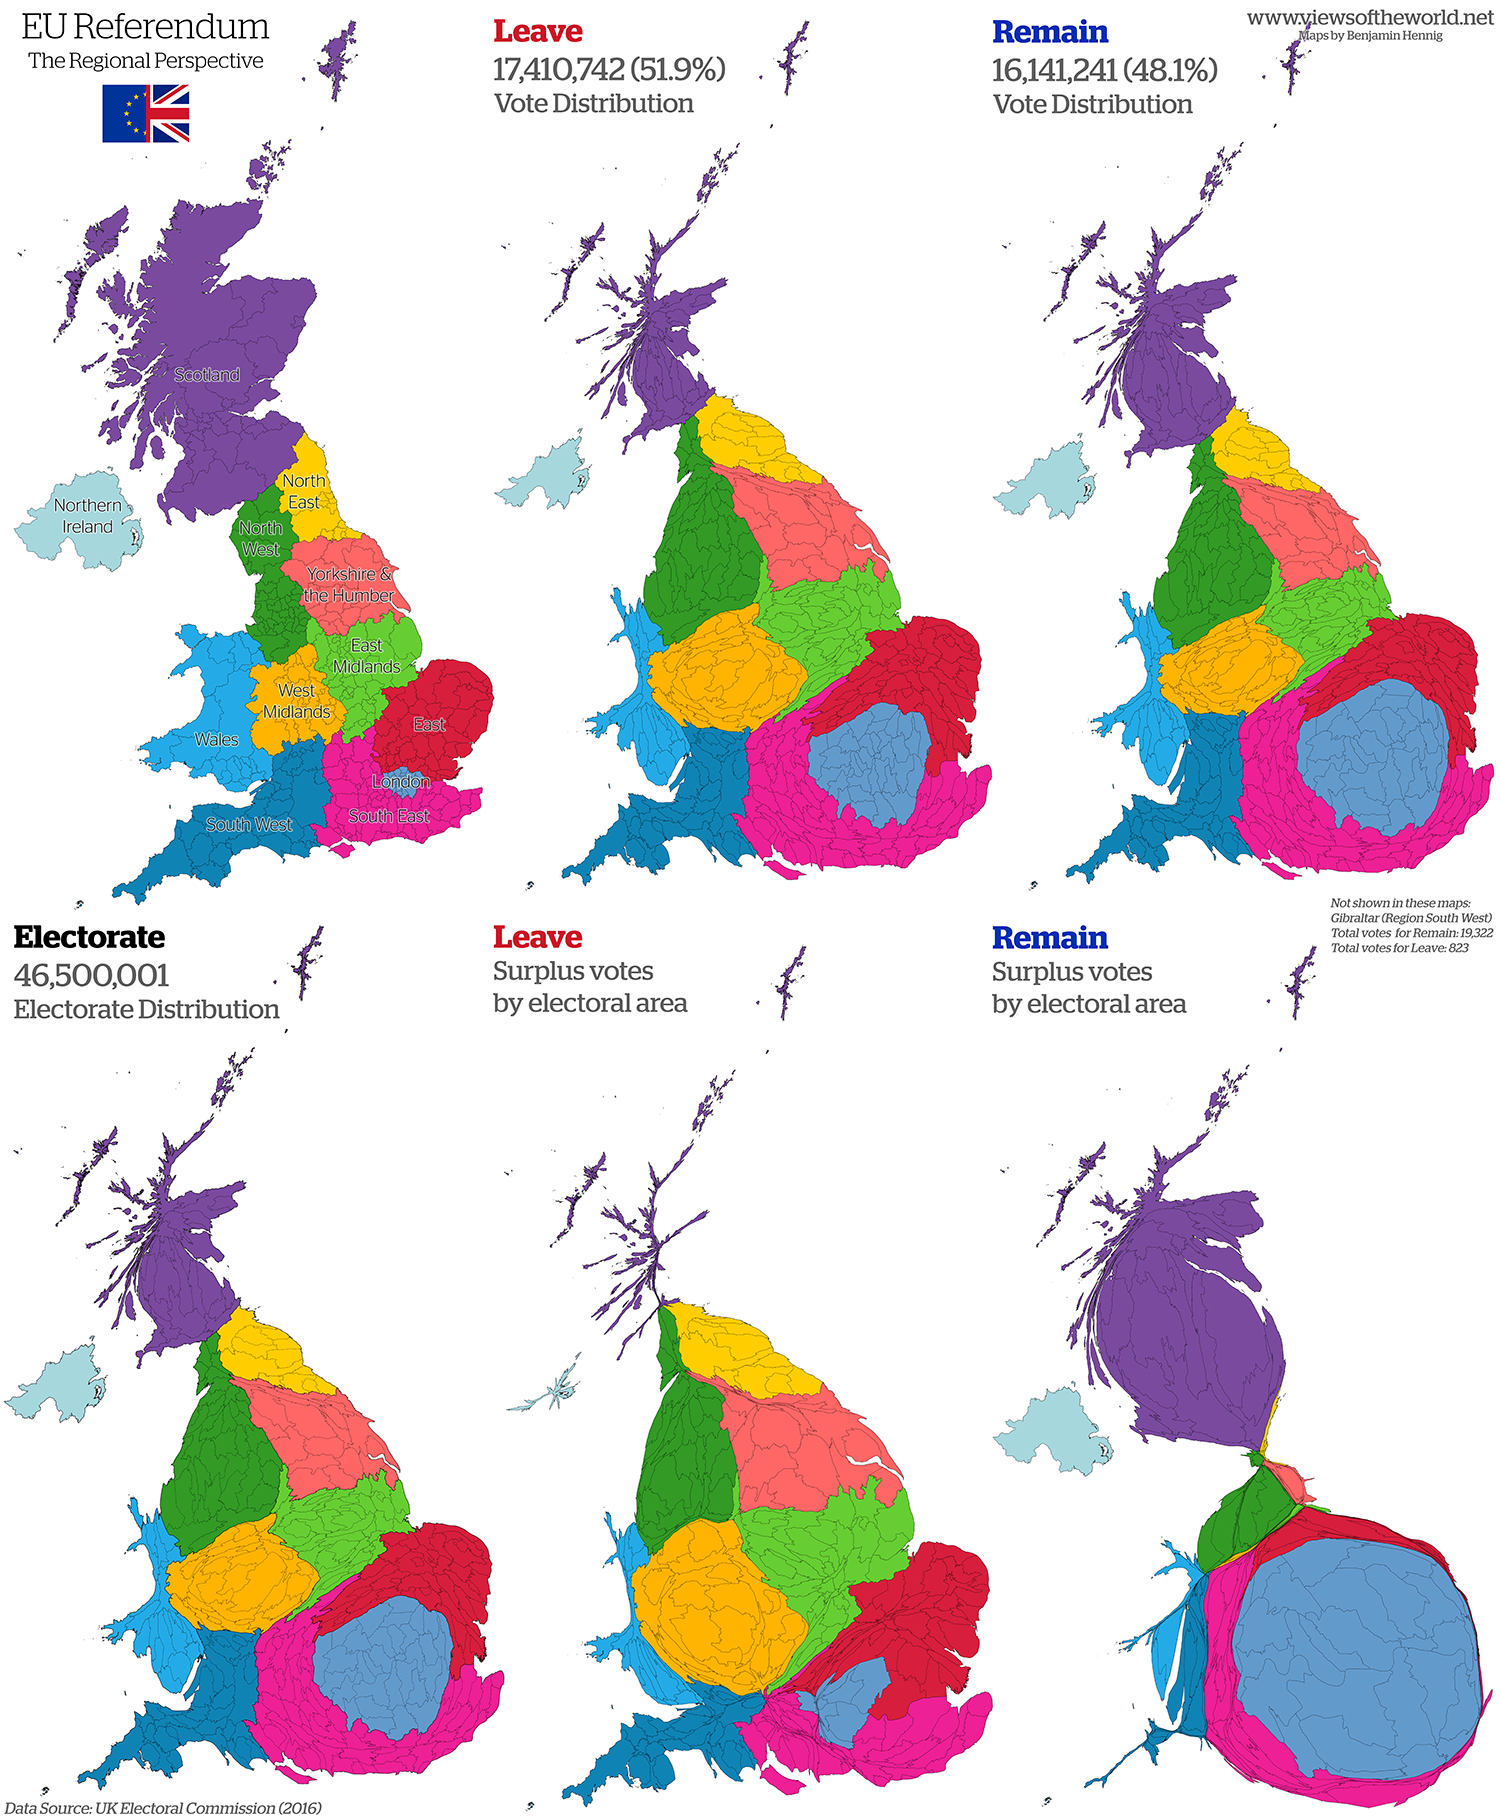 eu referendum 2016 cartogram series